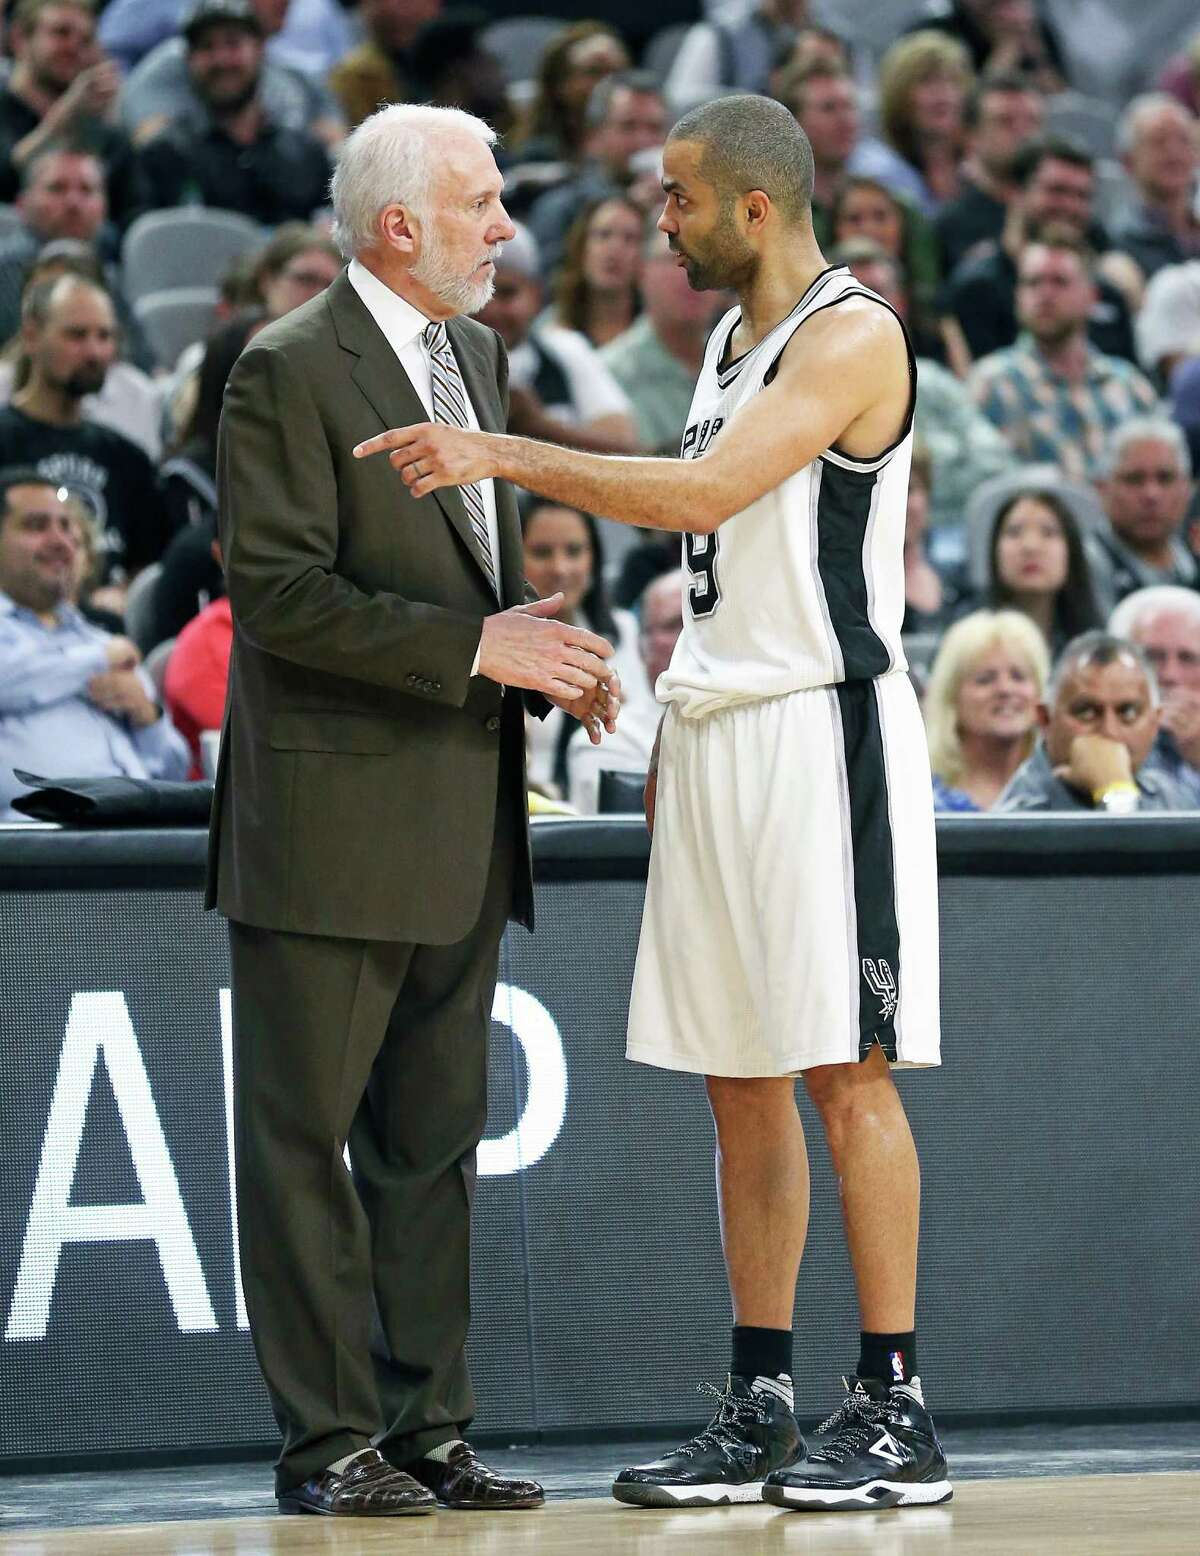 Tony Parker discusses tactics with Gregg Popovich as the Spurs host the Pistons at the AT&T Center on March 2, 2016.